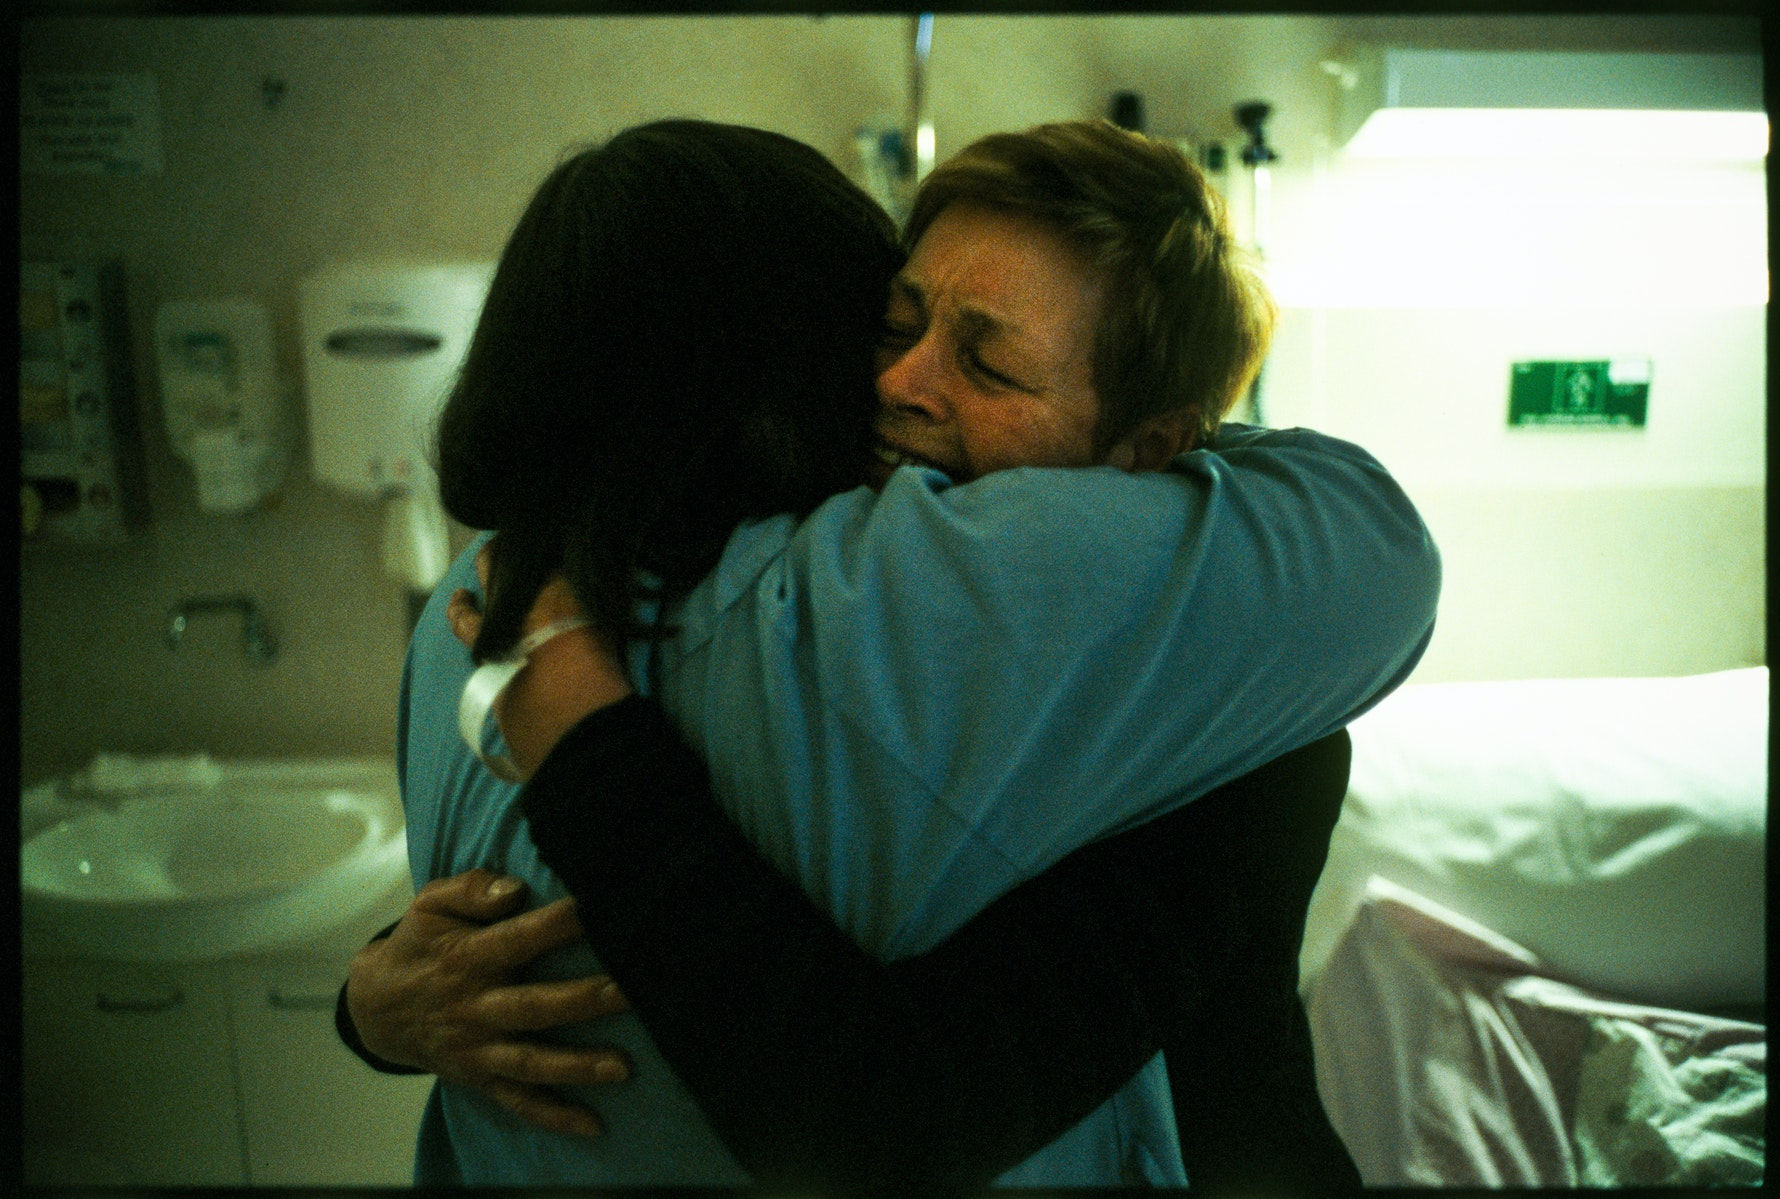 Mum and Bron, Isolation Room, 2006.